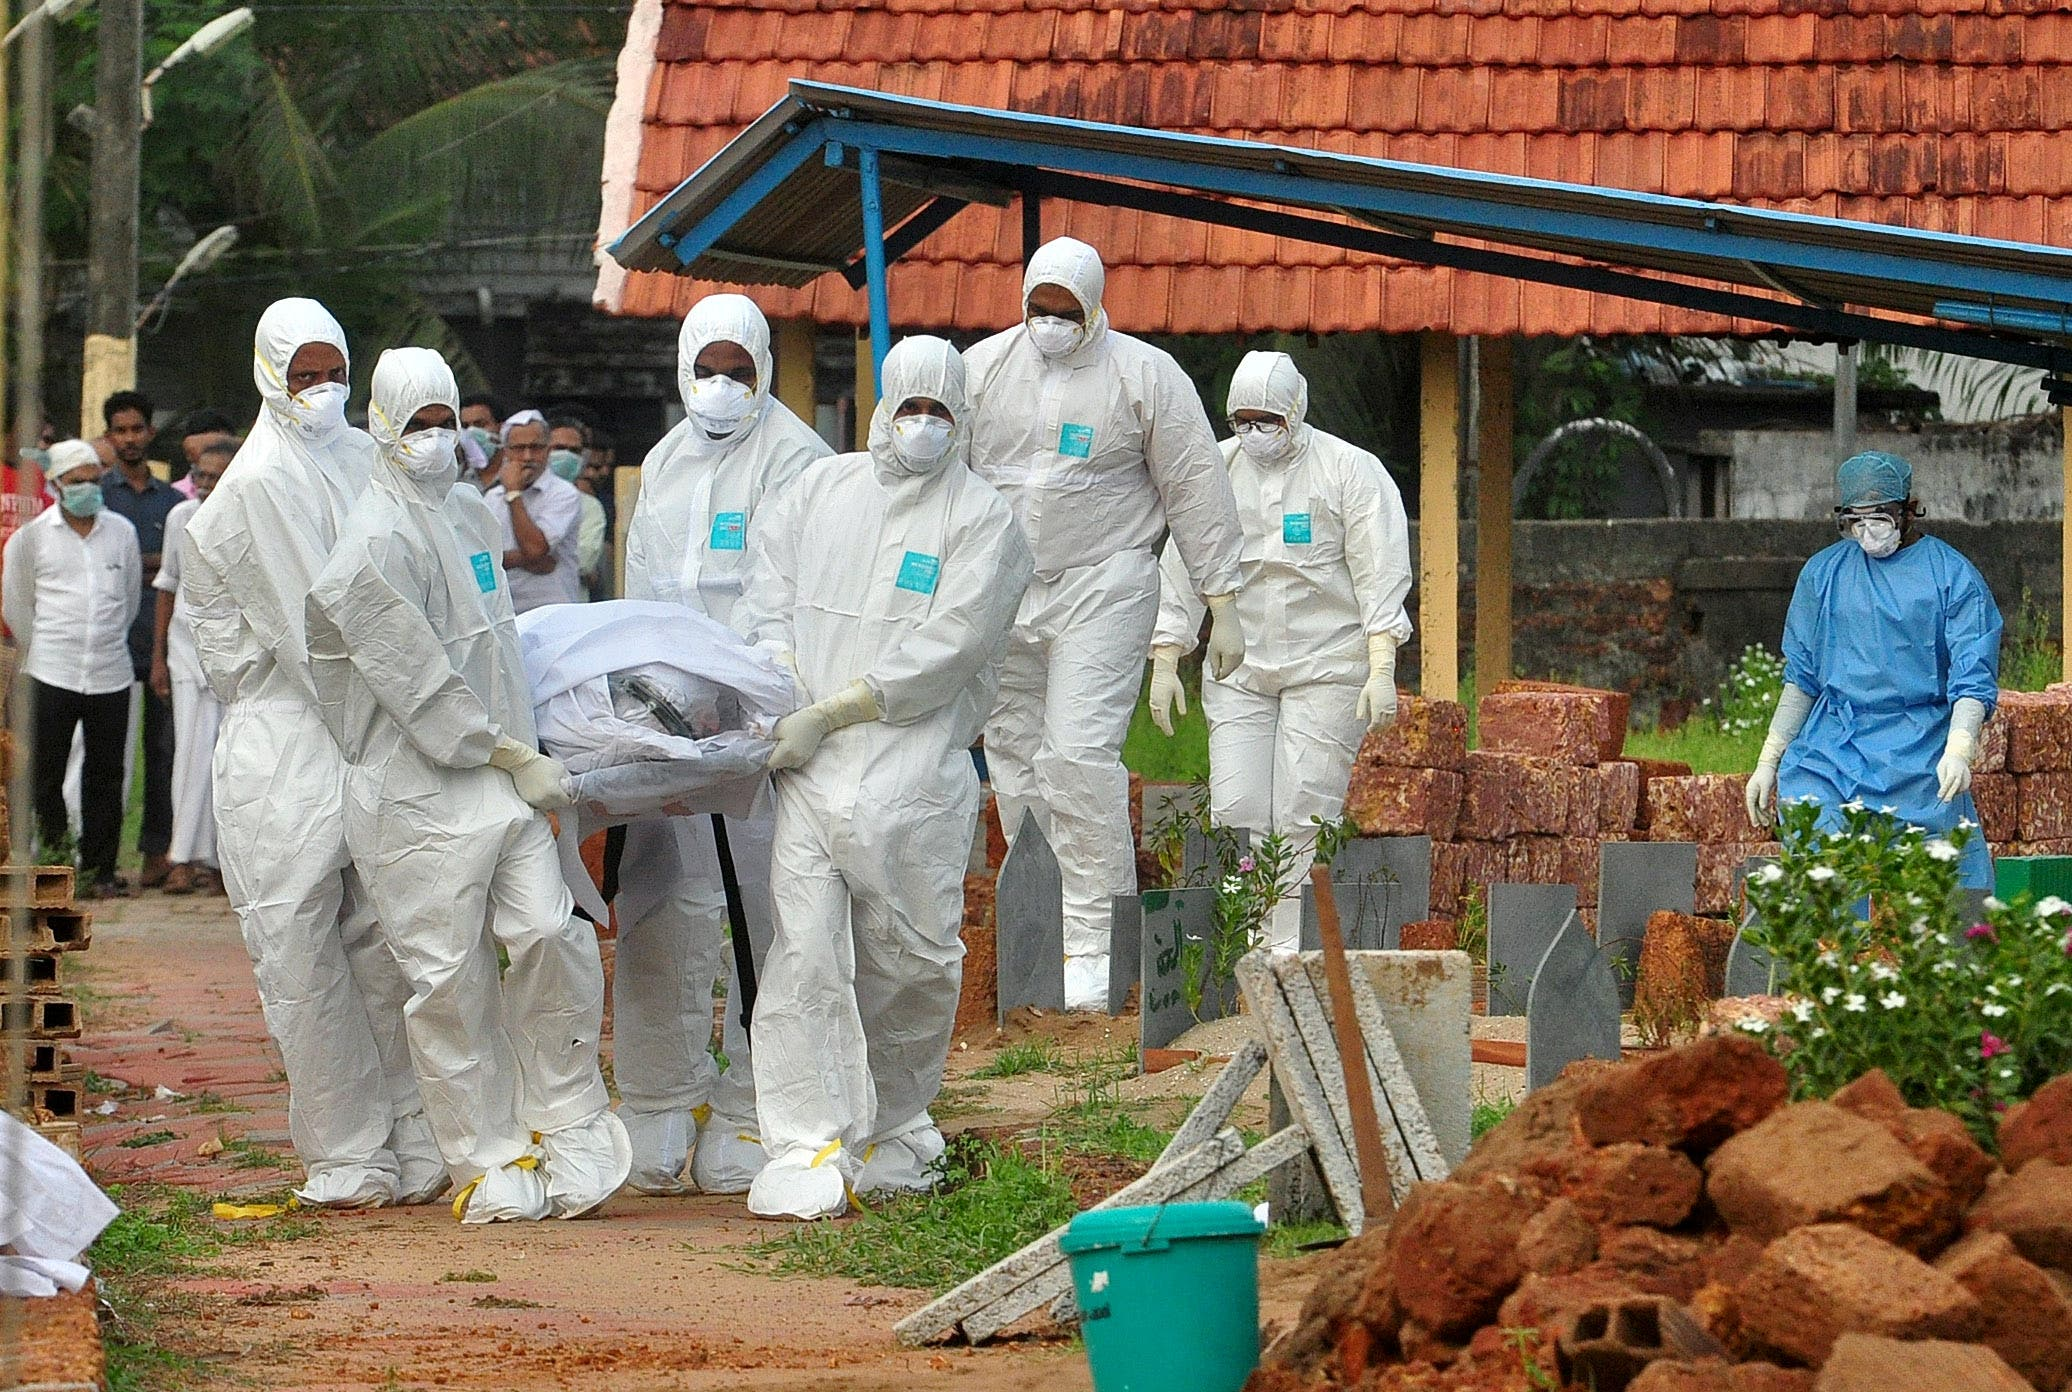 Doctors and relatives wearing protective gear carry the body of a victim, who lost his battle against the brain-damaging Nipah virus, during his funeral at a burial ground in Kozhikode, in the southern Indian state of Kerala, India. (File photo: Reuters)